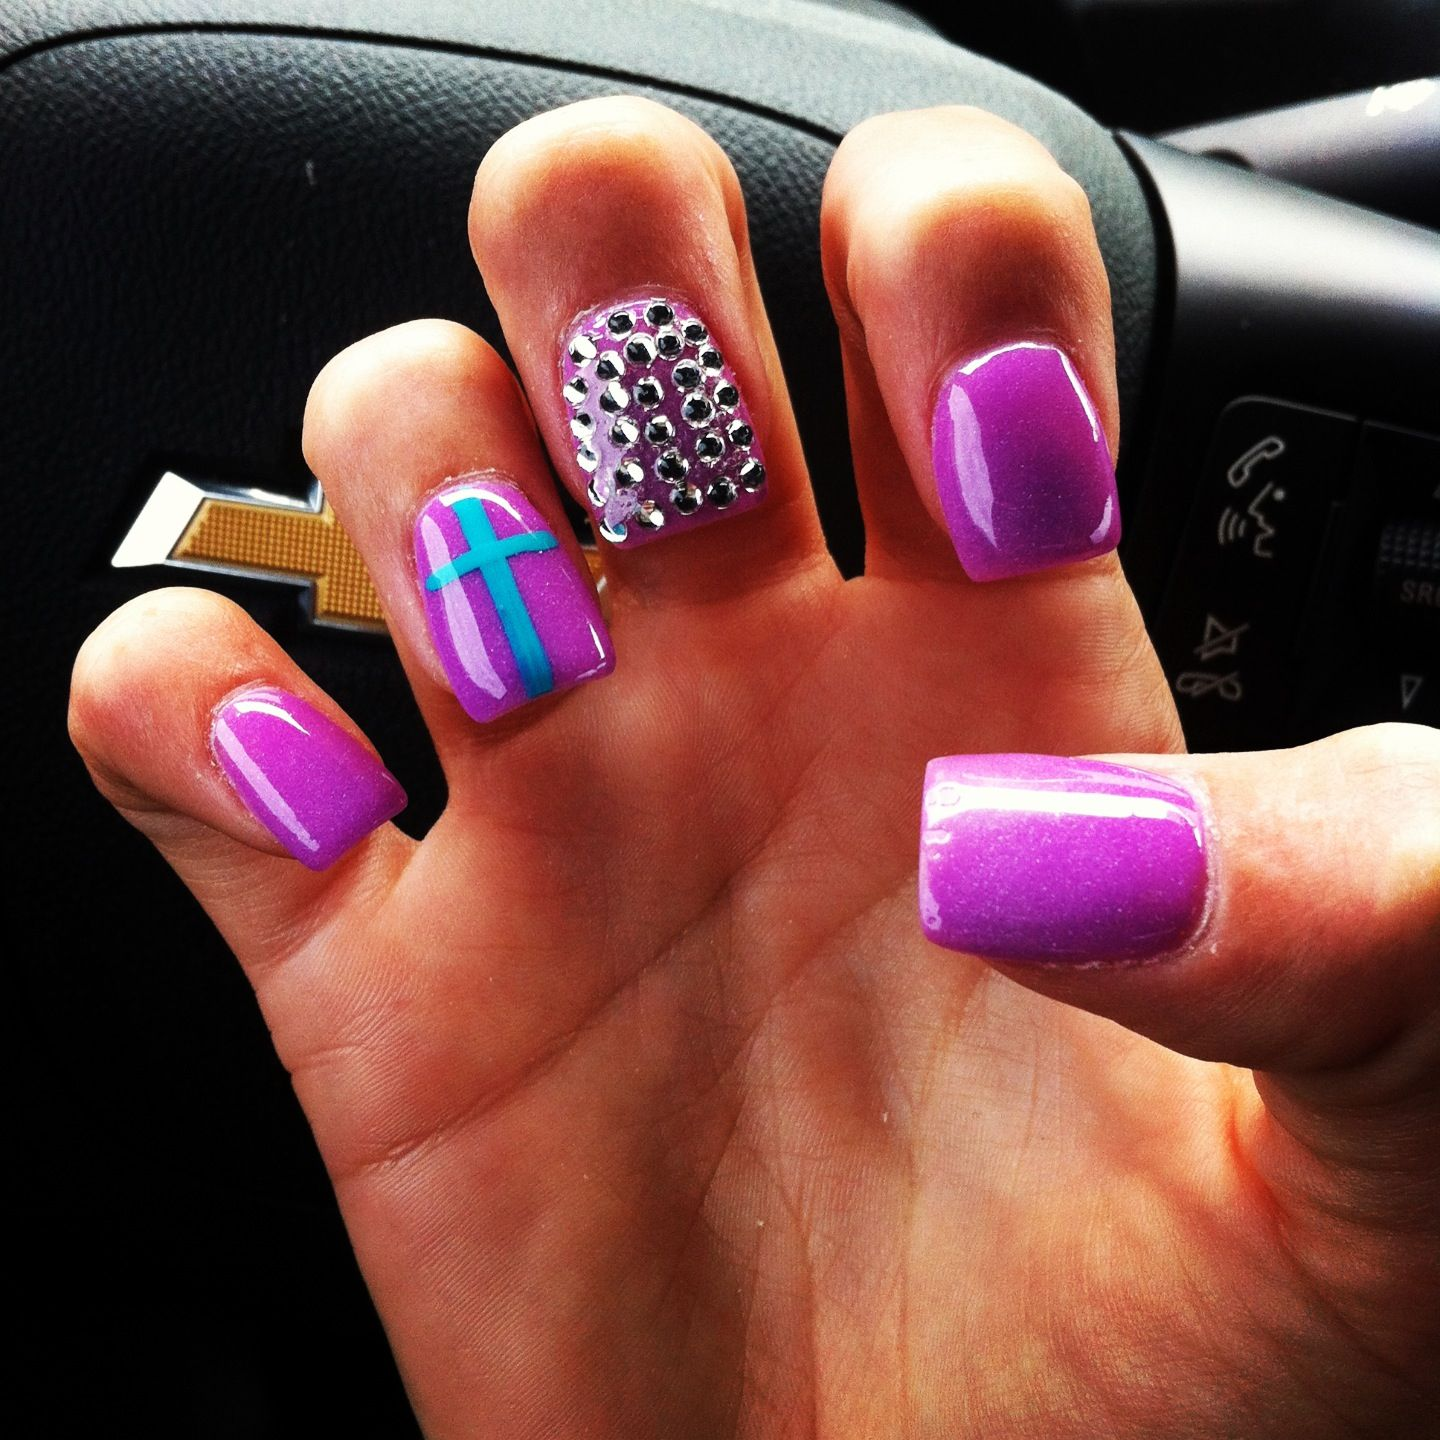 Purple powder fake nails with rhinestones and turquoise cross design ...